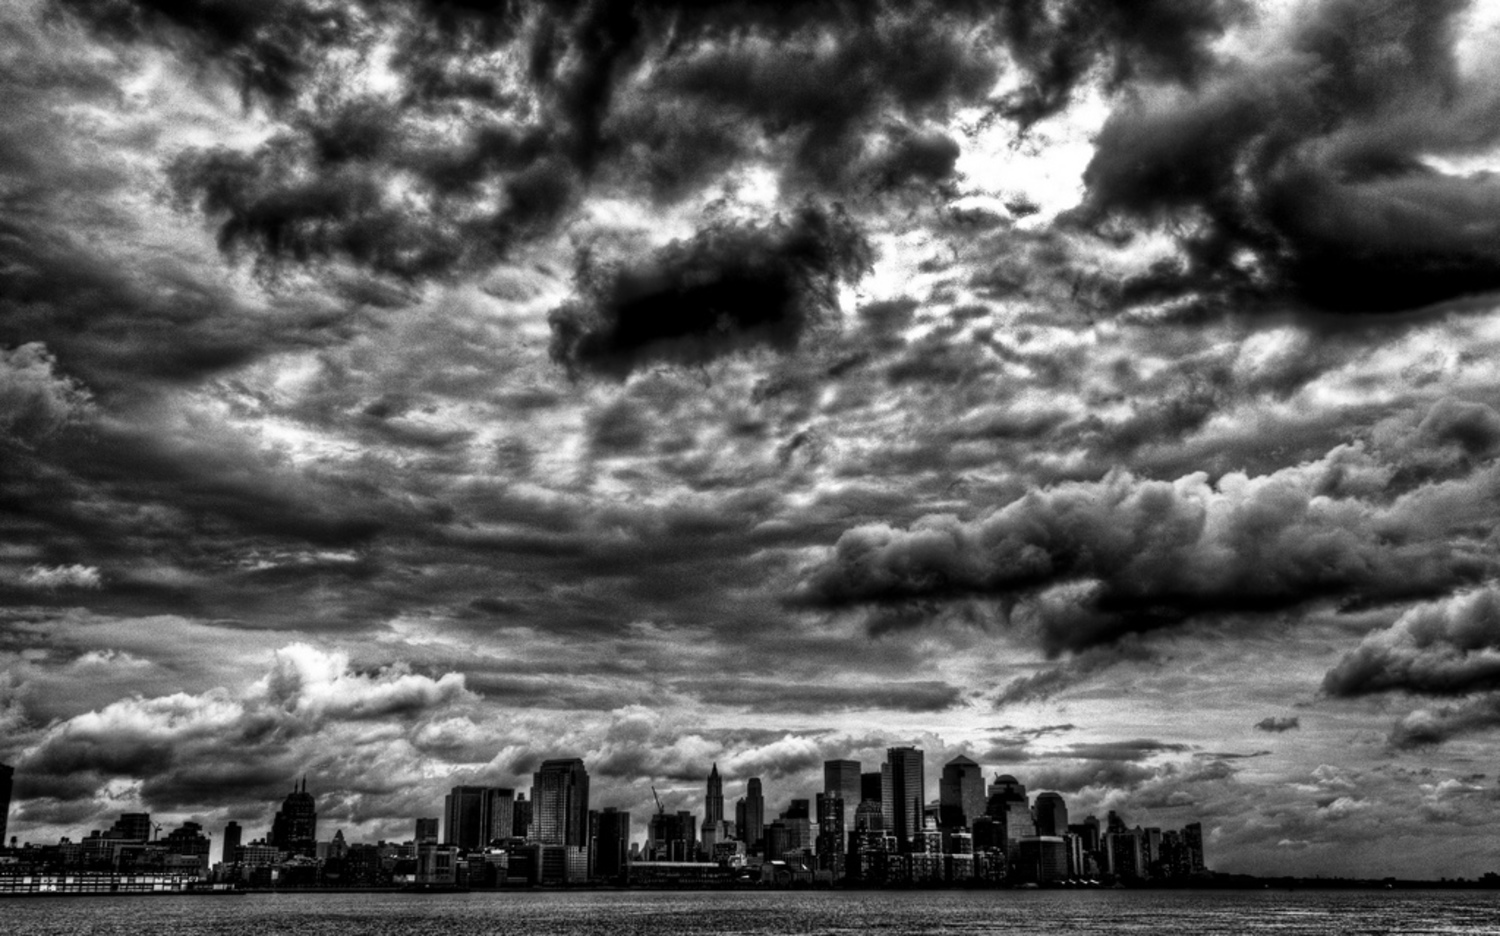 "Stormy Gotham | Storm clouds over Lower Manhattan. Taken from Hoboken, NJ. 3 Exposures, +2 EV, 0 EV, -2 EV lighting was tweaked in LightRoom, Photoshop was not used.   <a href=""http://www.bighugelabs.com/onblack.php?id=3656101668&size=large"" rel=""nofollow"">View Large On Black</a>"